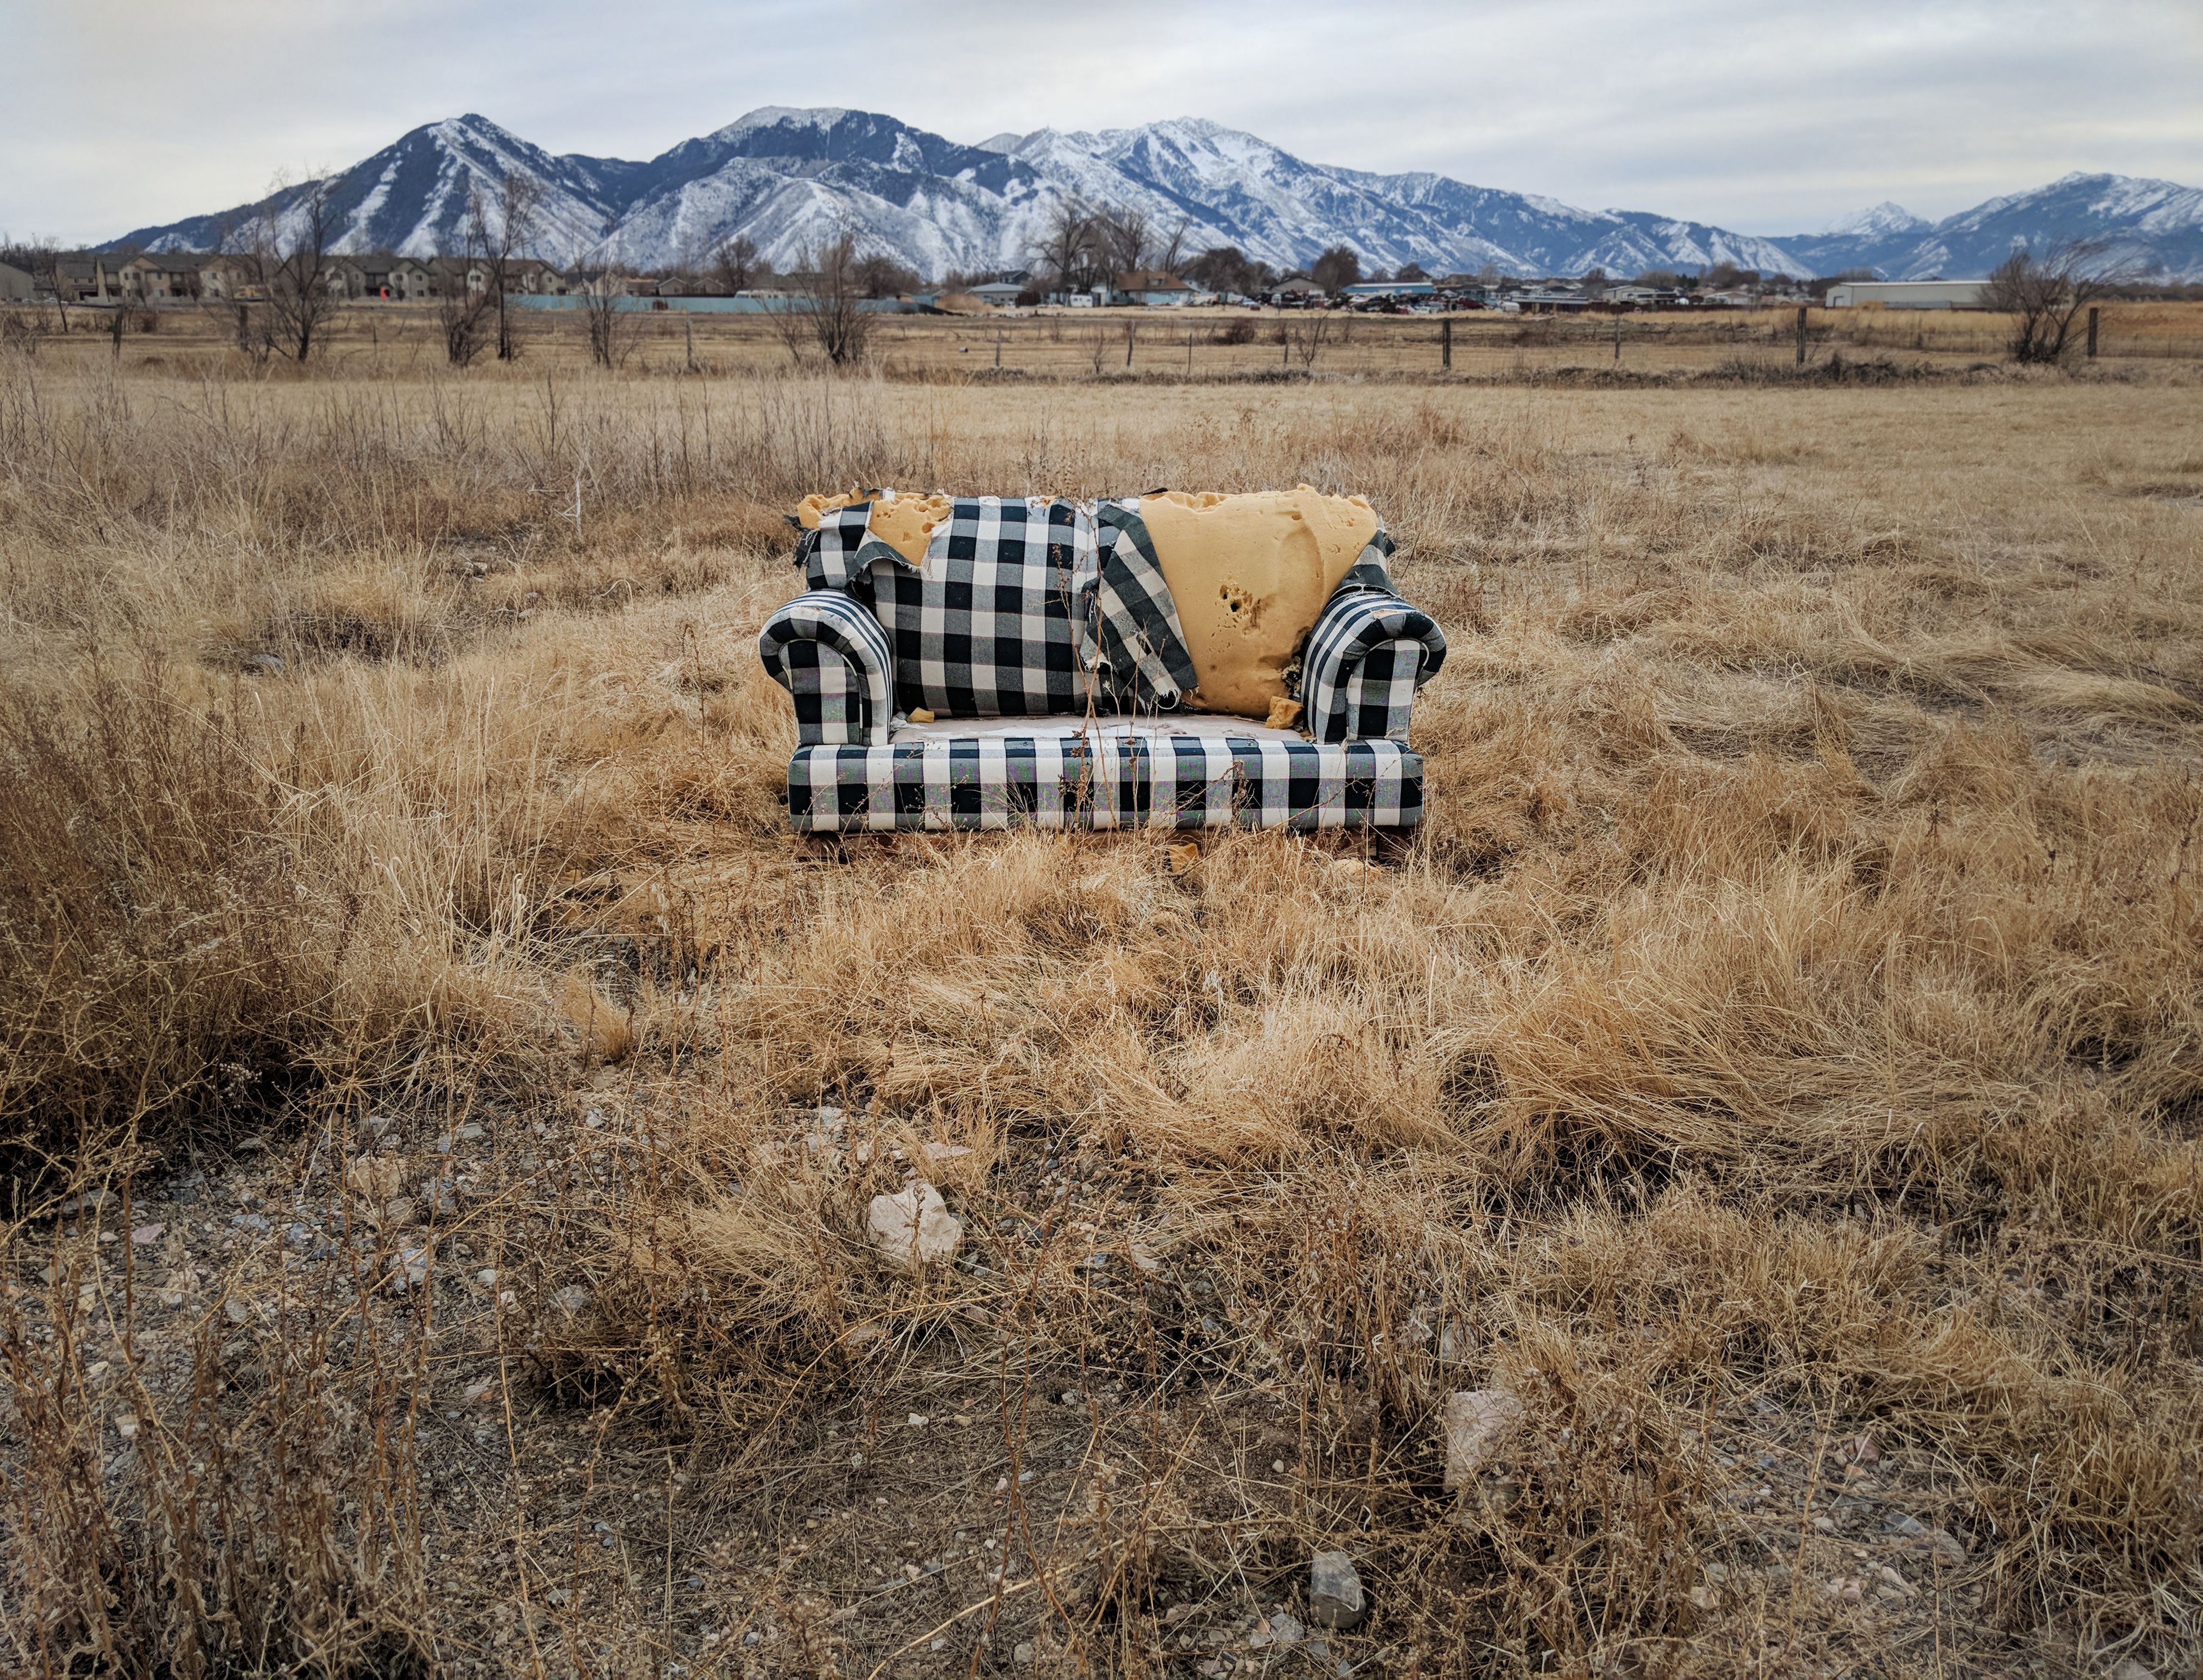 abandoned_couch_10_by_yellowicous_stock-